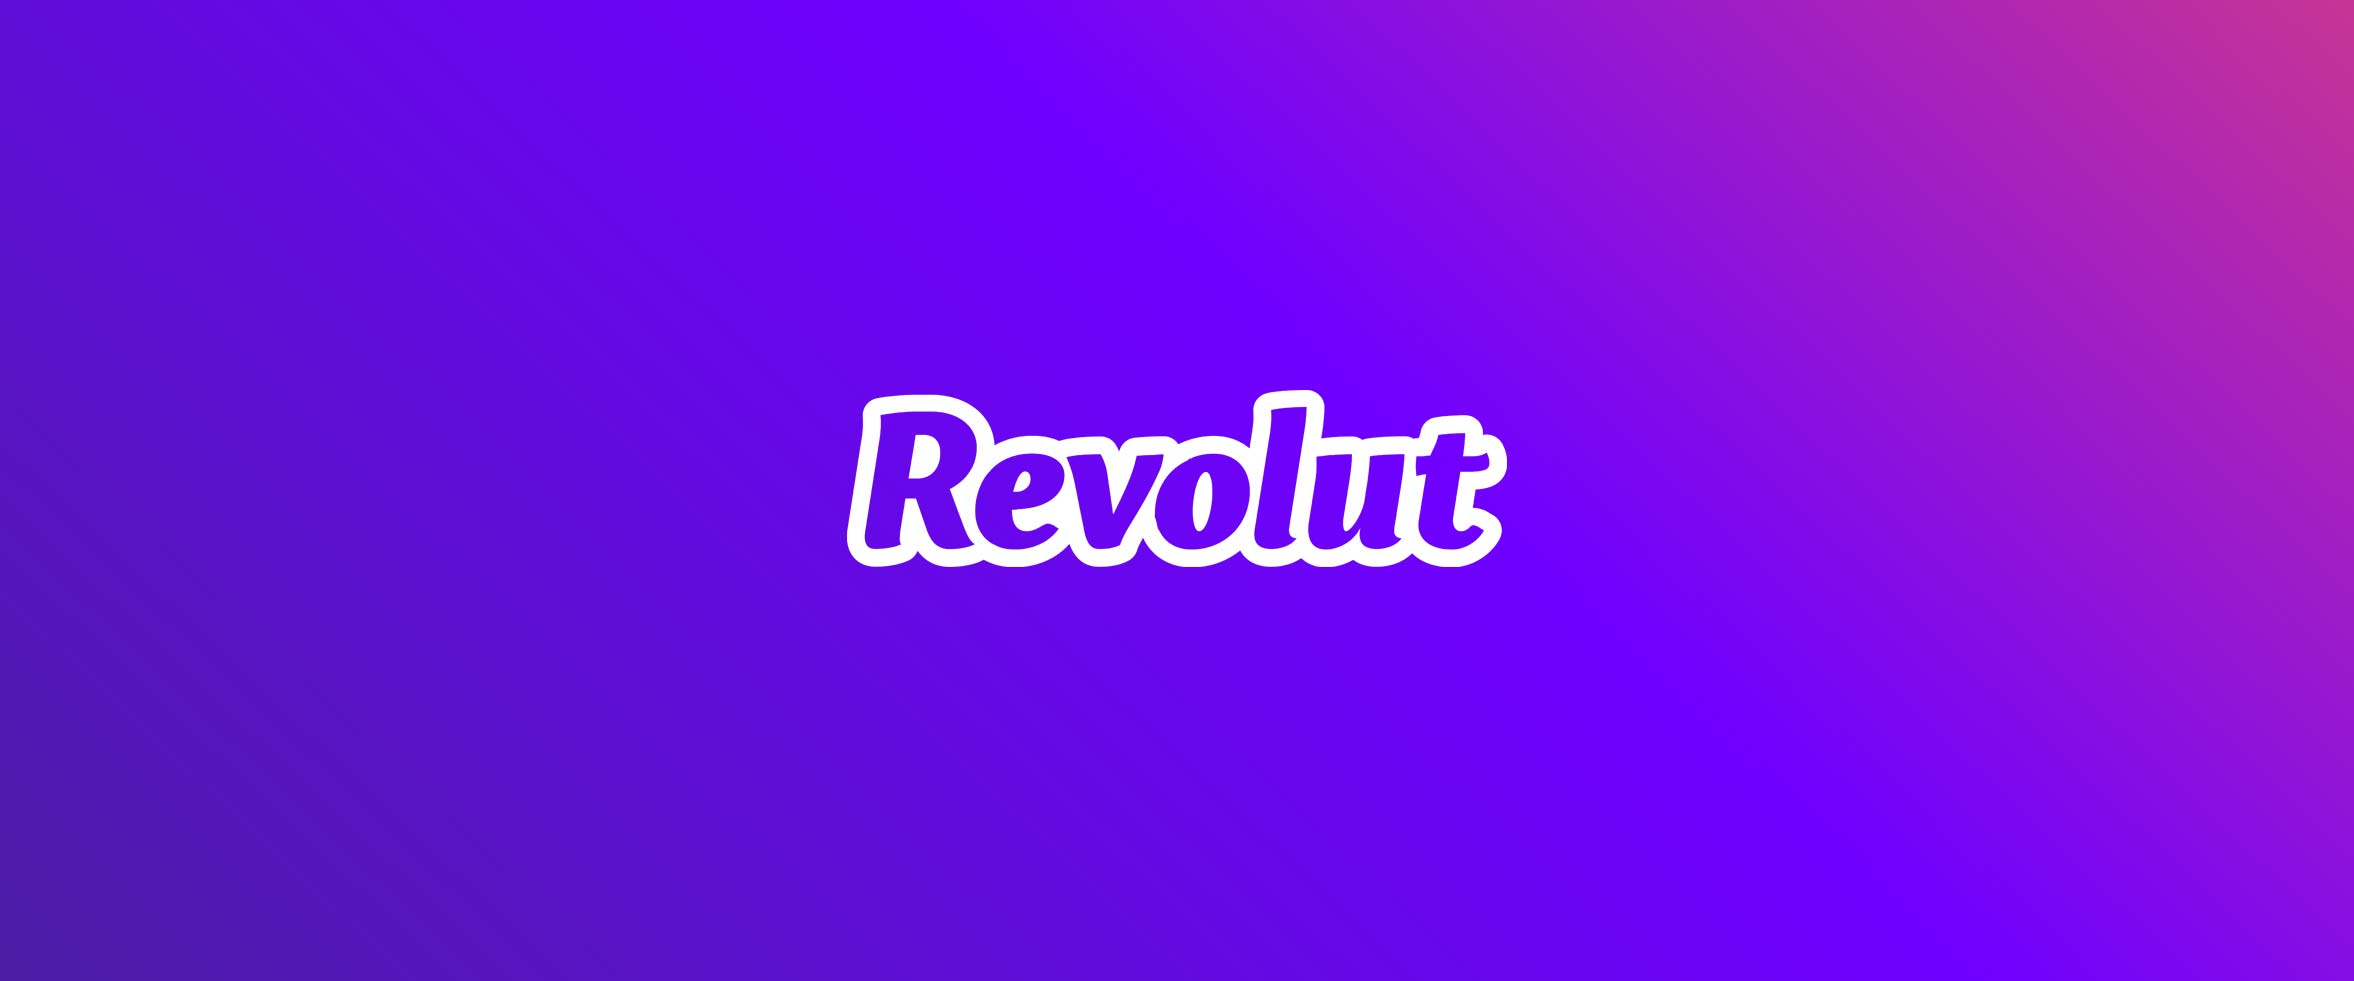 Use Revolut for deposits and withdrawals at Wildz